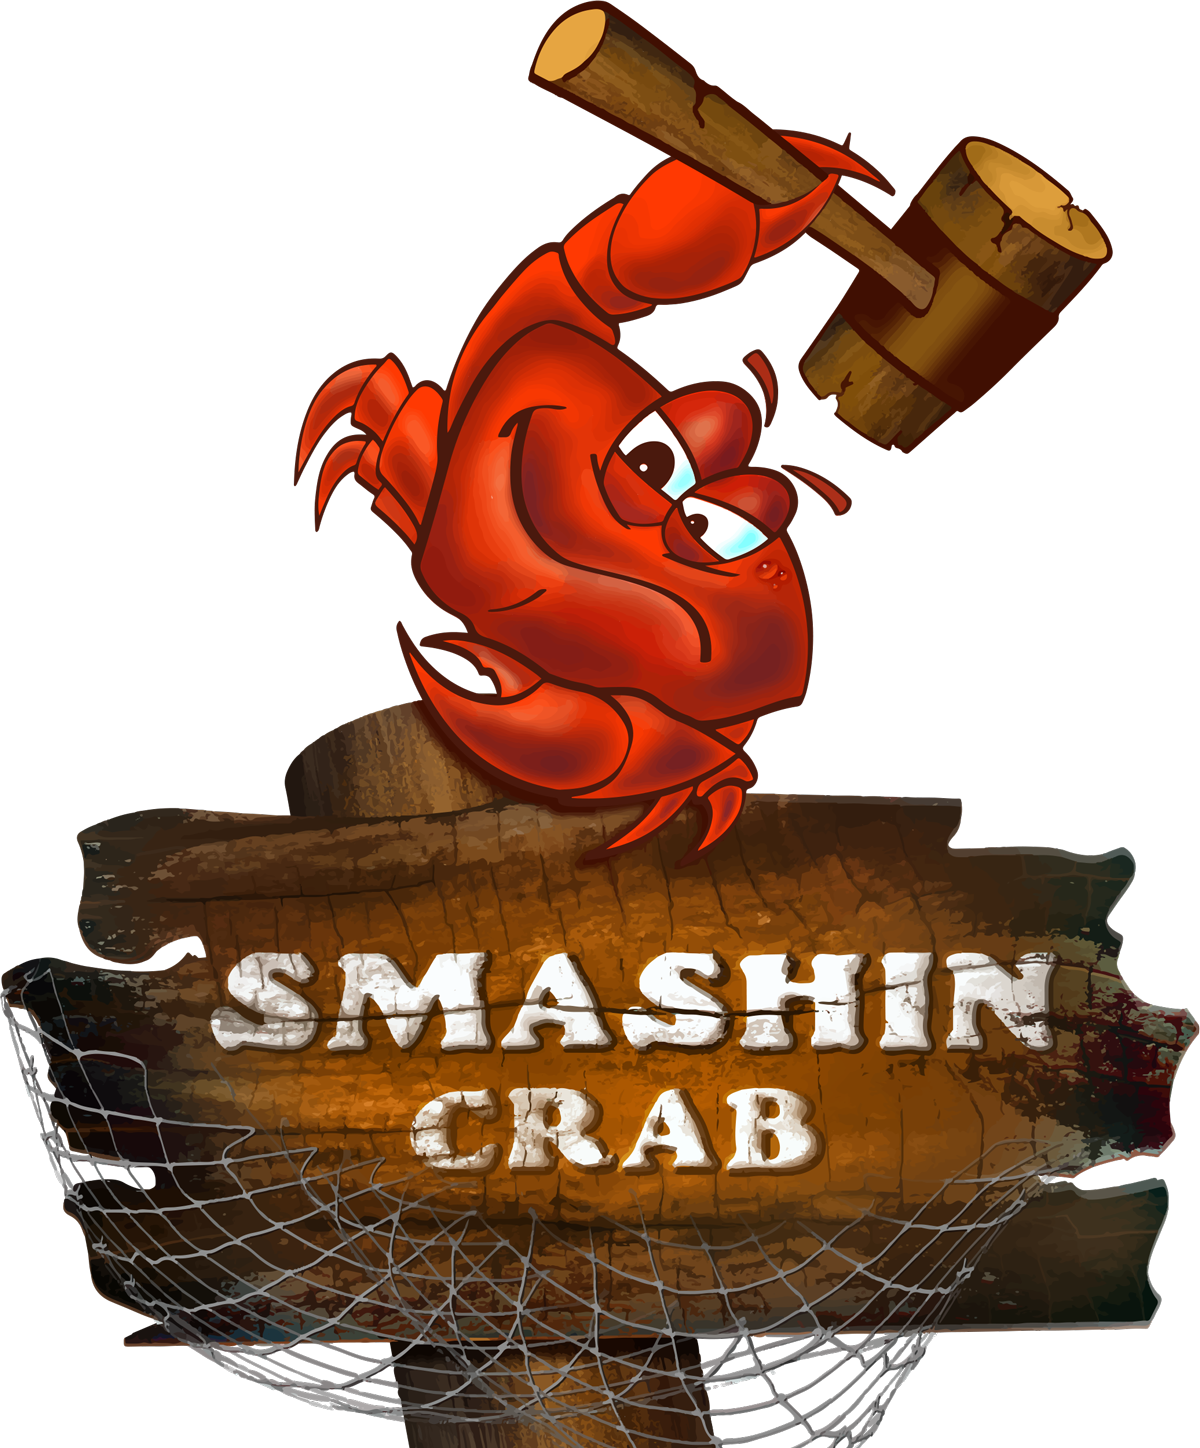 Lobster clipart snow crab. Smashin hours locations sub